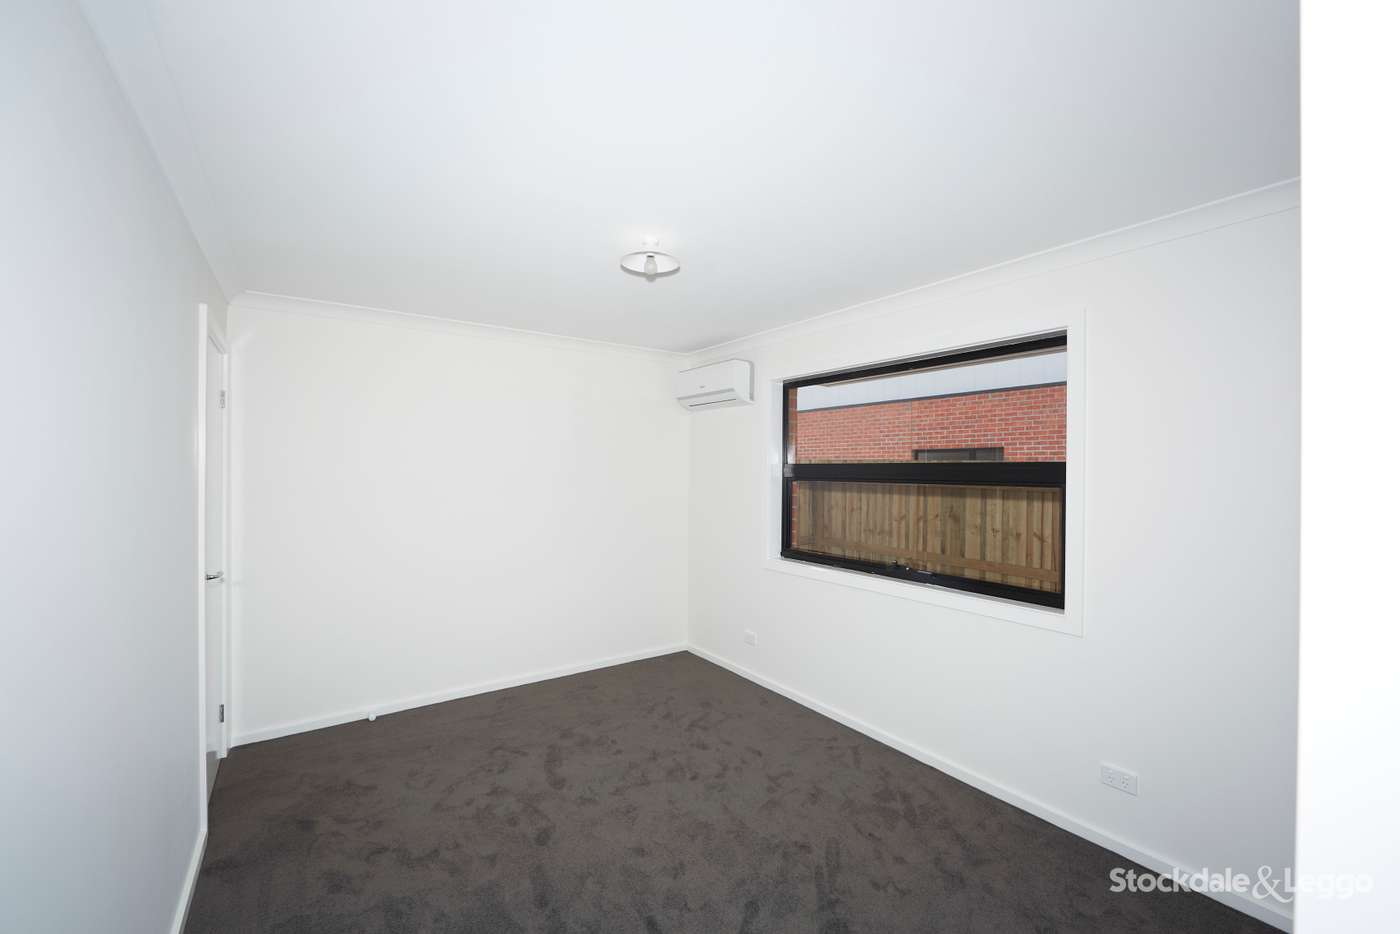 Seventh view of Homely townhouse listing, 1/85 Chapman Avenue, Glenroy VIC 3046